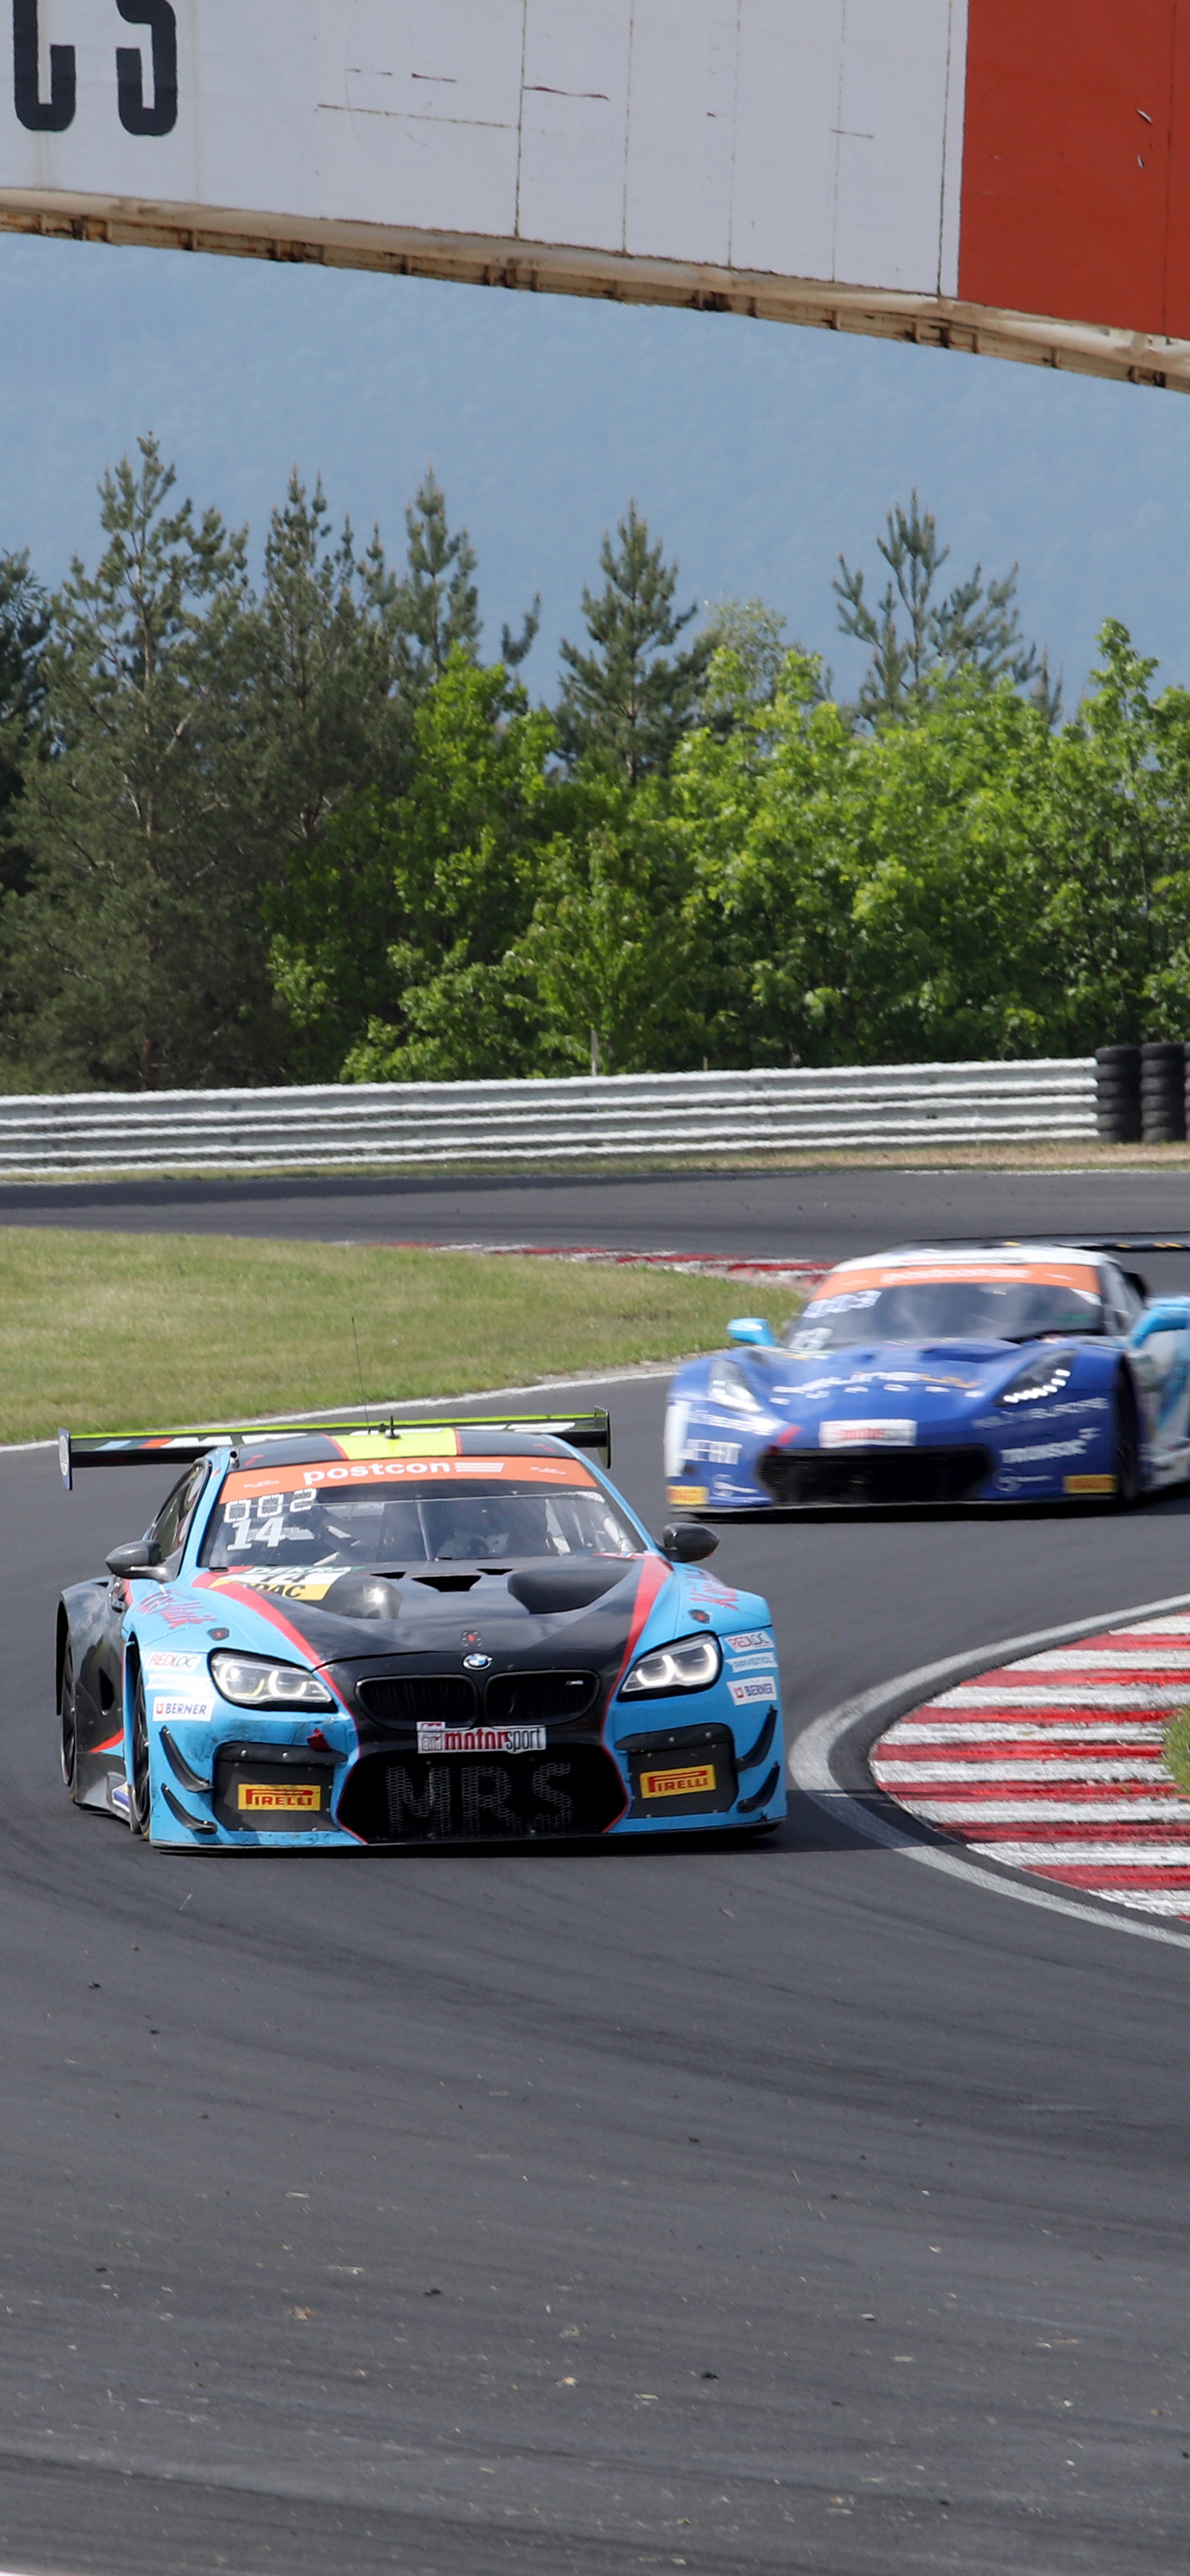 mrs-bmw-m6-gt3-adac-gtm-most-2019.05-07 PHONE PIC